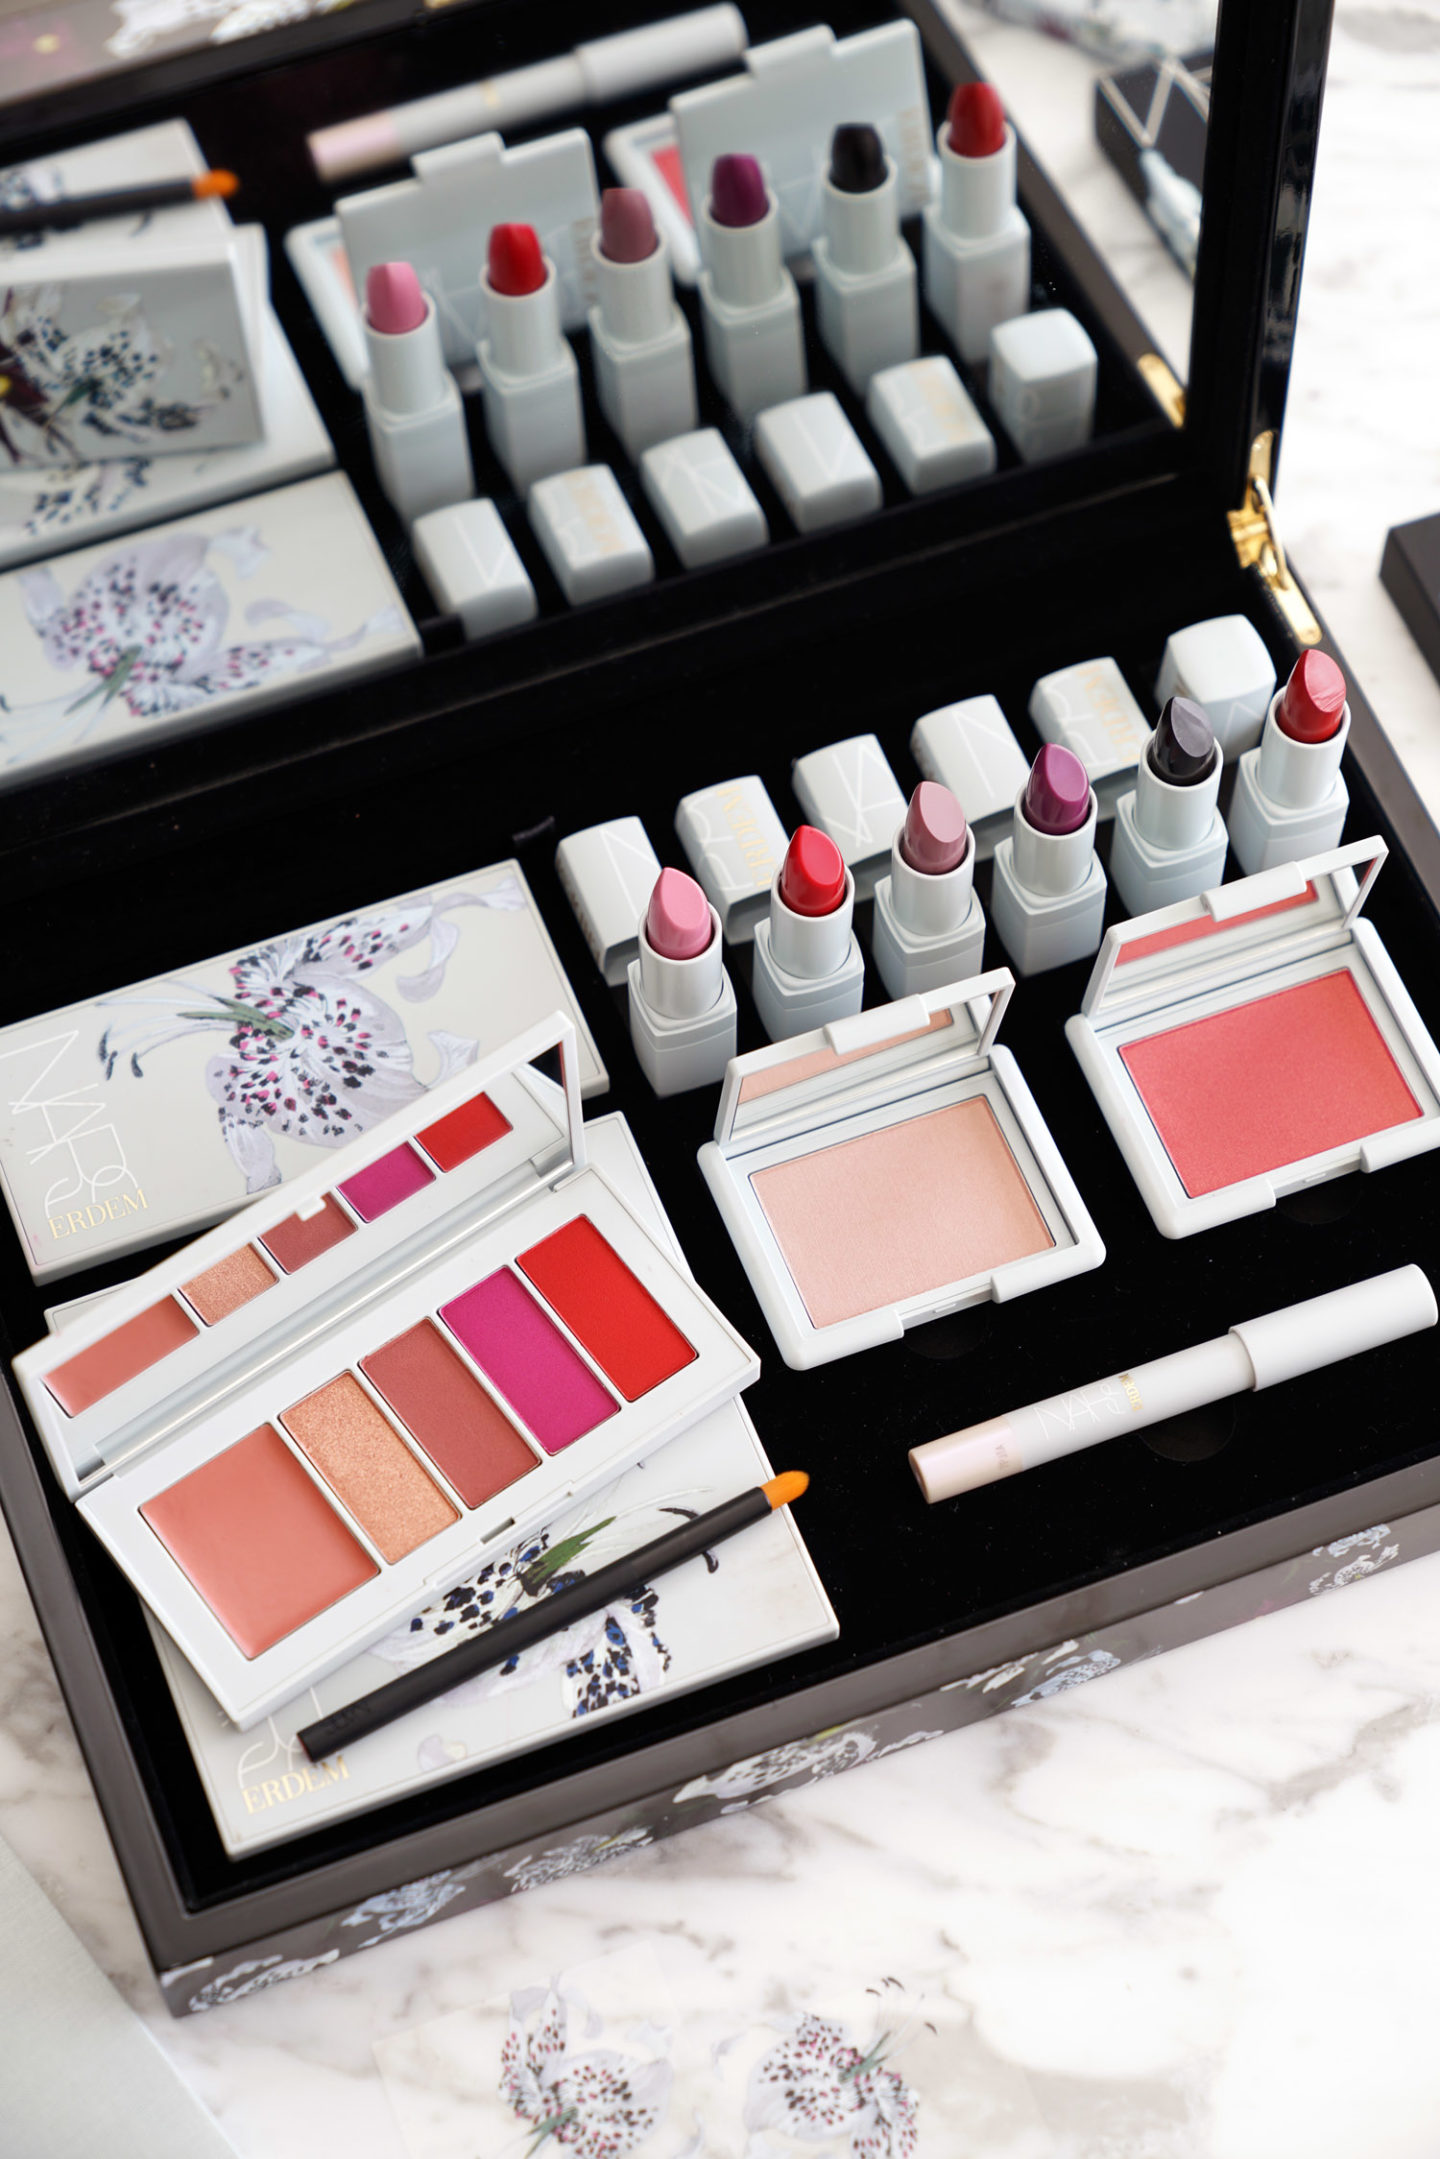 NARS x Erdem Étrange revue de la collection de fleurs via The Beauty Look Book